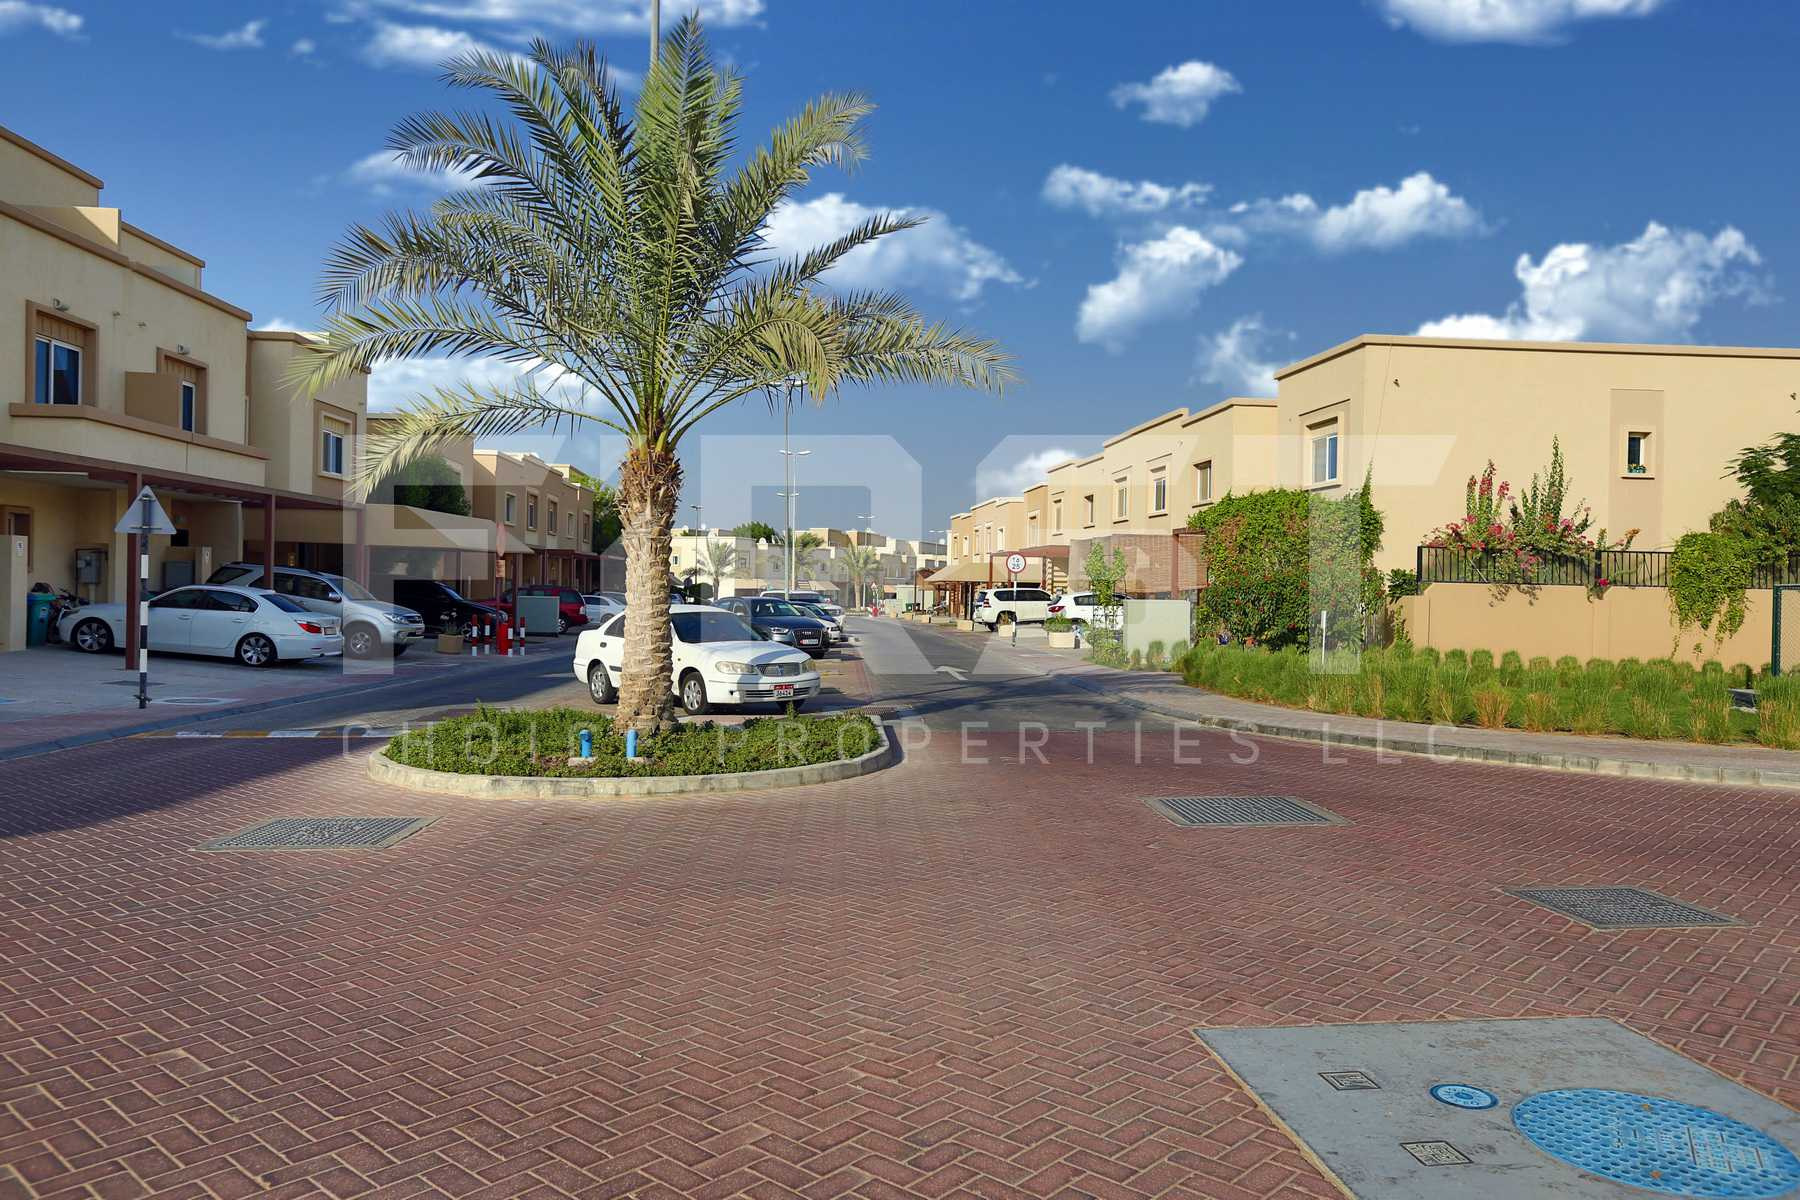 External Photo of Arabian Village Al Reef Villas Al Reef Abu Dhabi UAE (19).jpg